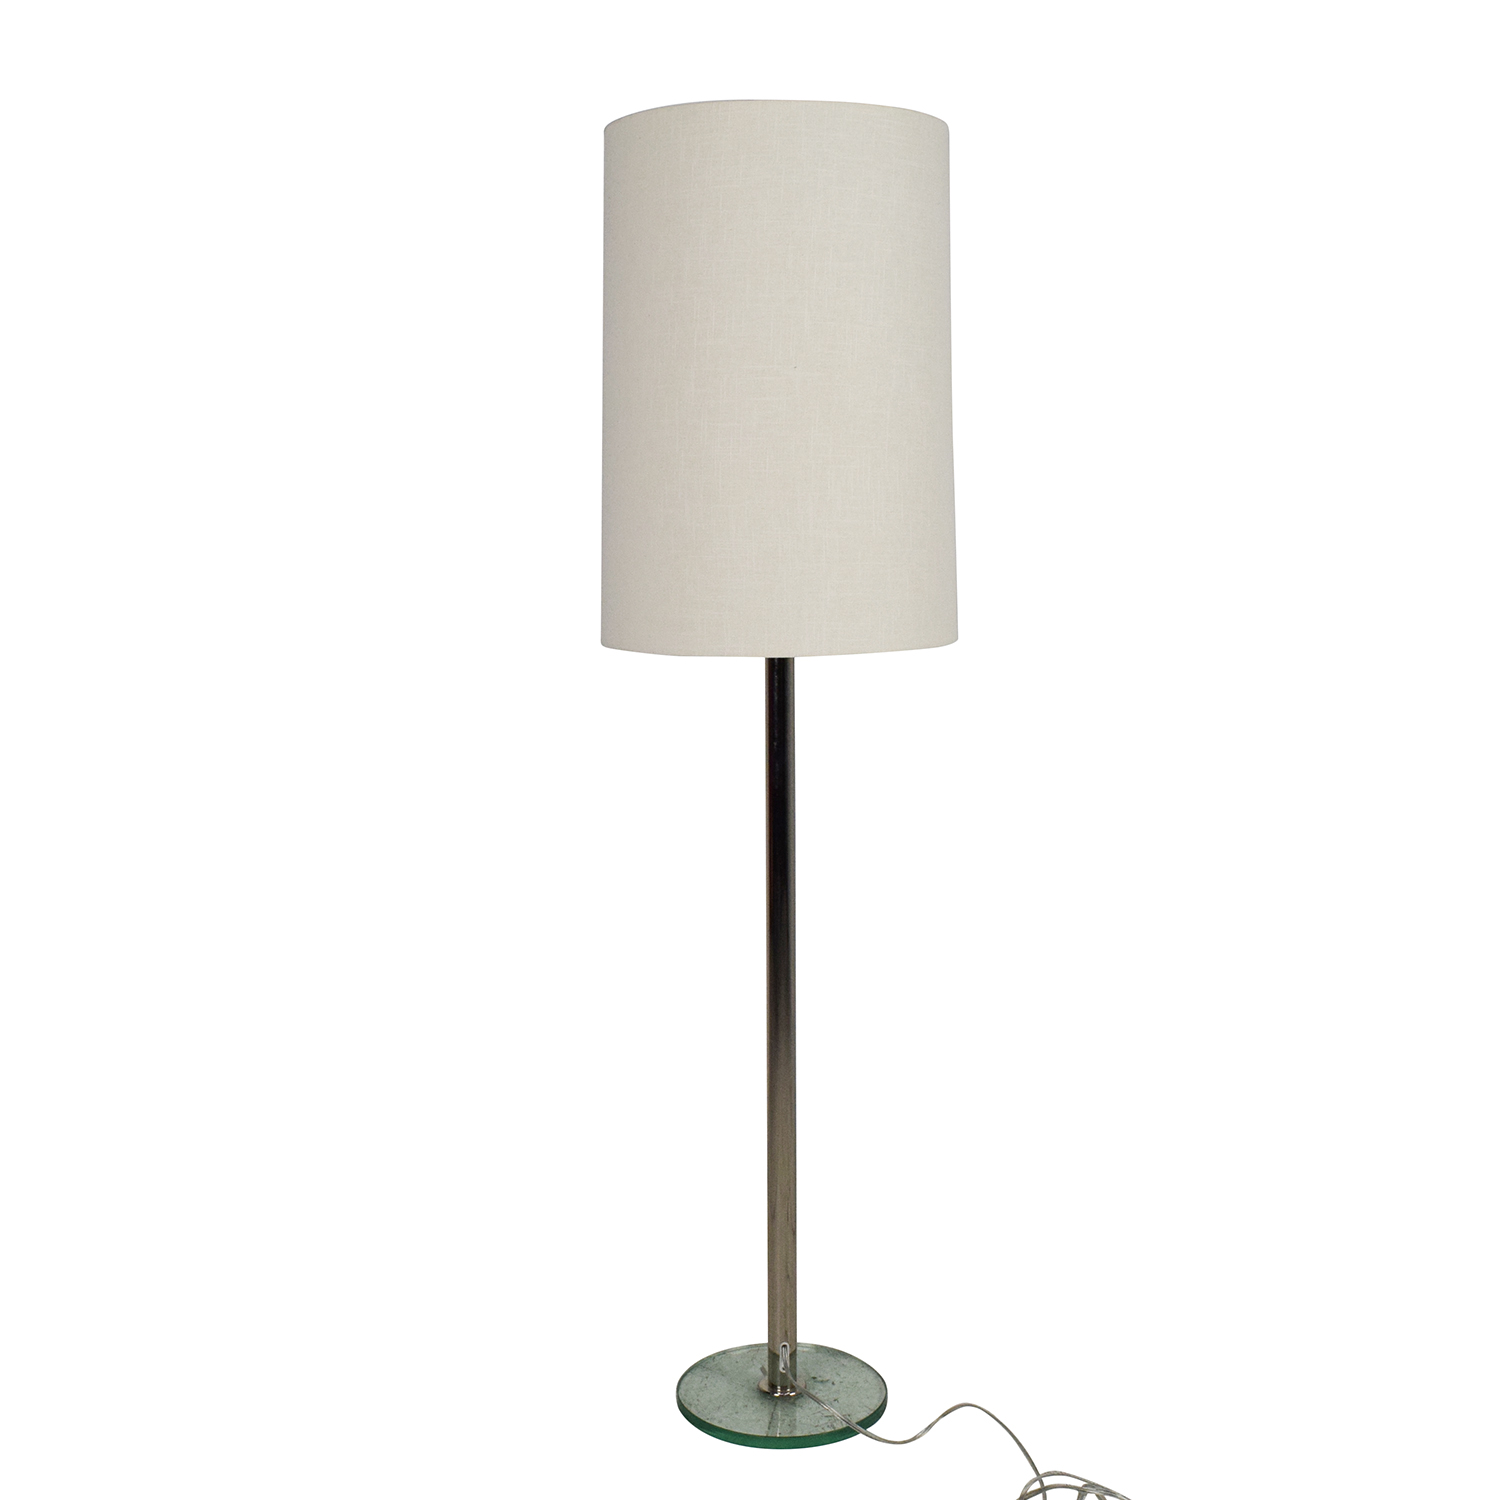 70 OFF Crate Barrel Crate Barrel Claire Floor Lamp Decor